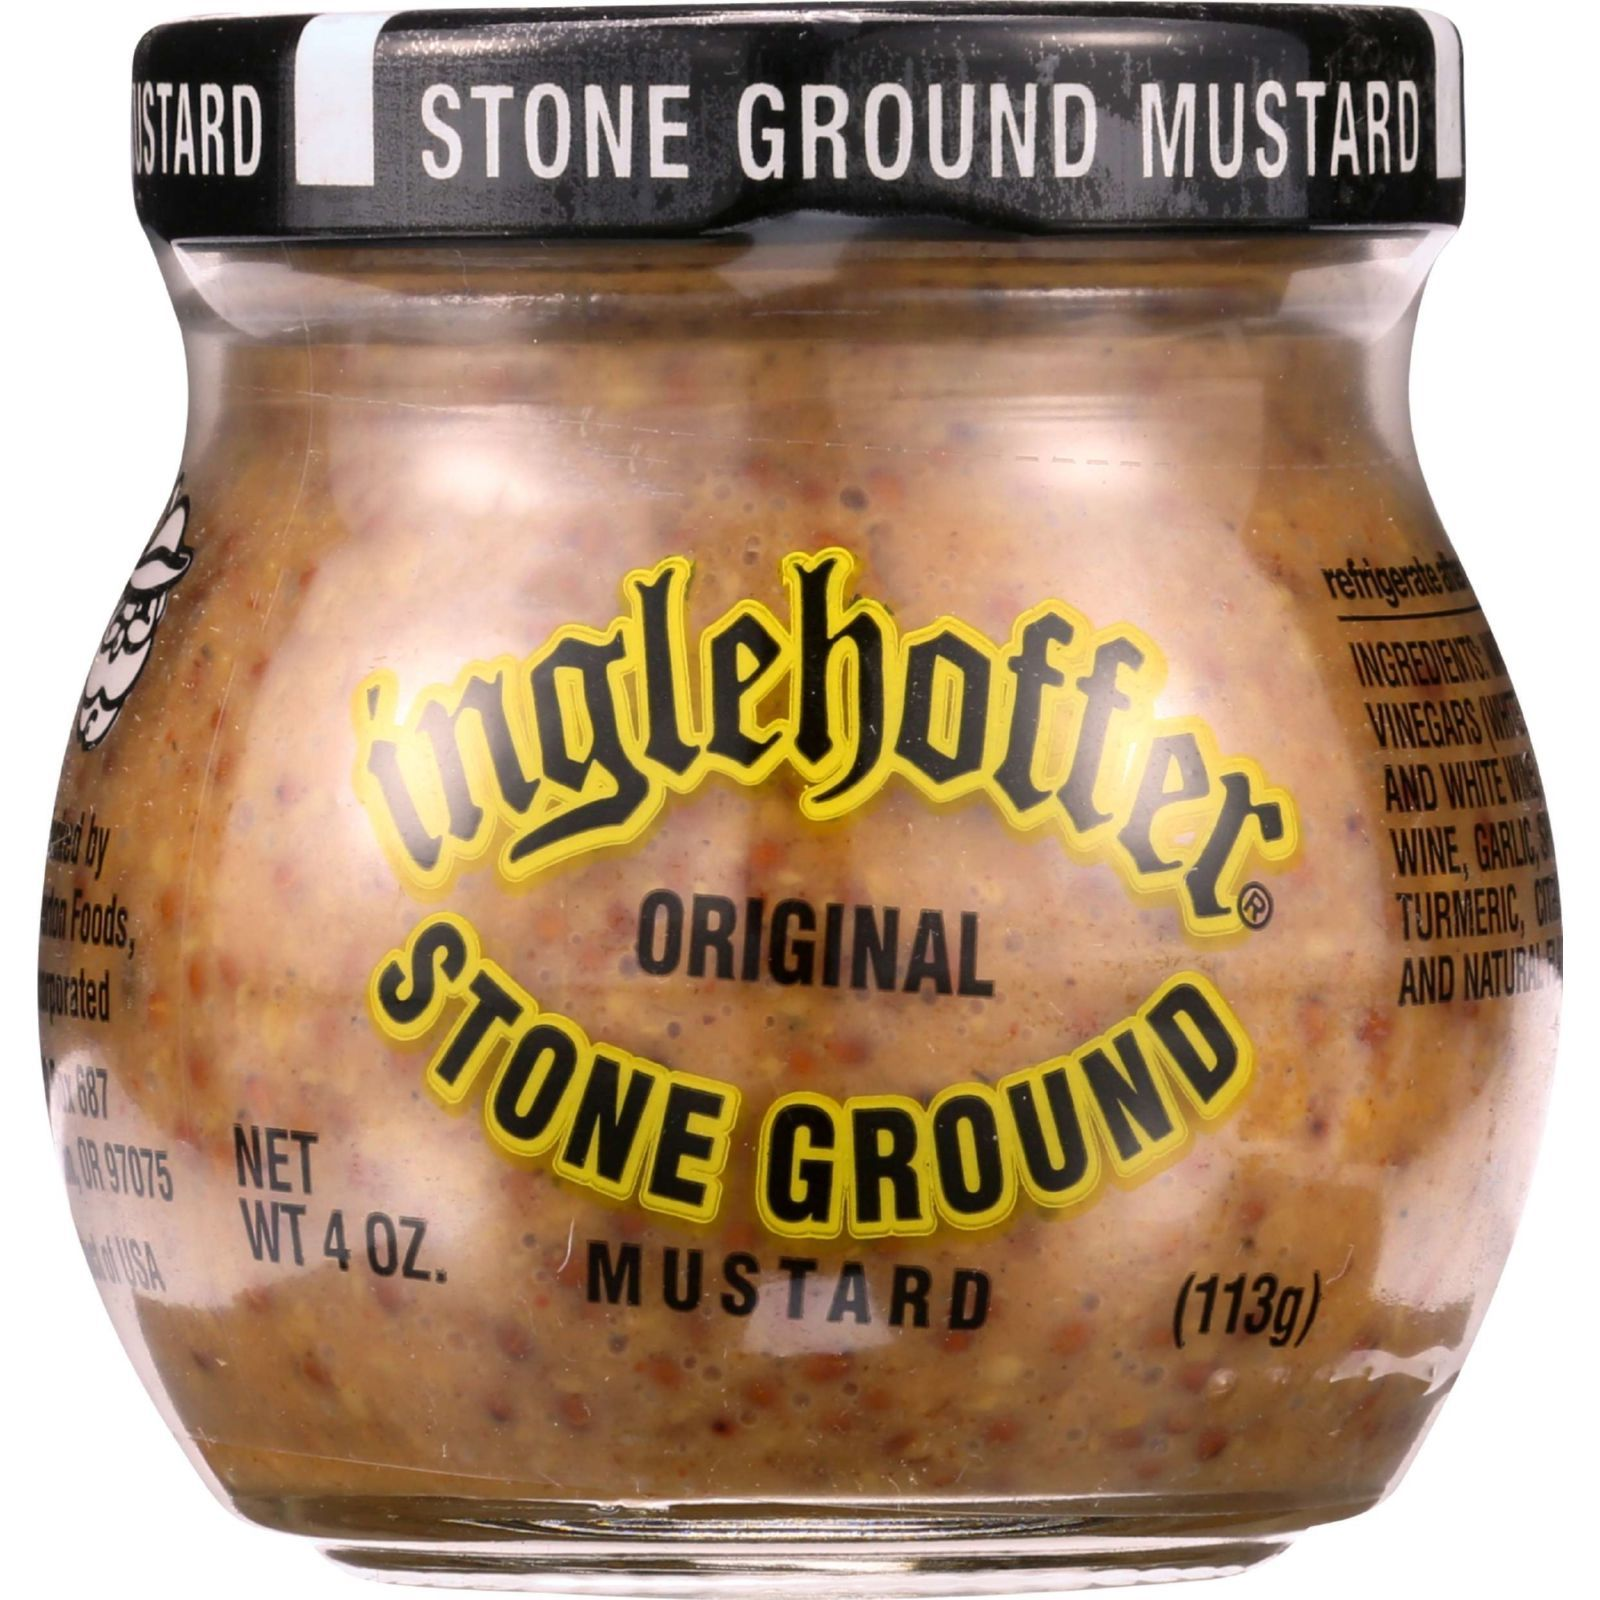 Inglehoffer Mustard - Stone Ground - 4 oz - case of 12